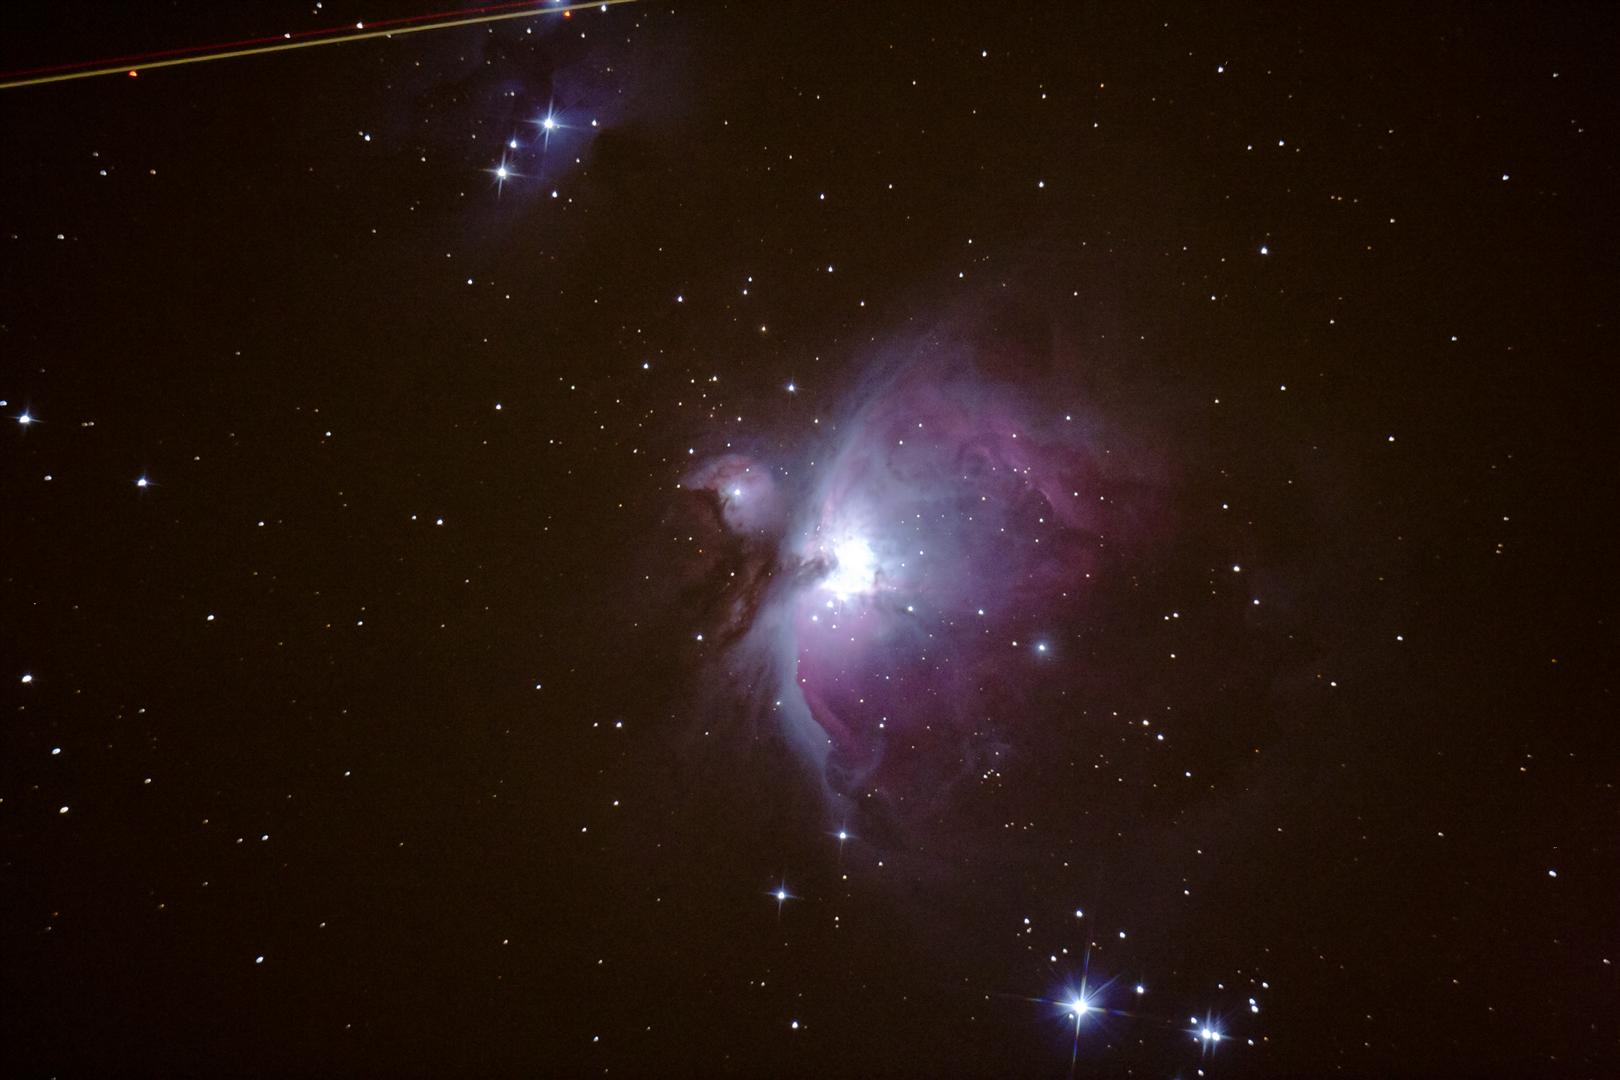 M42 - Great Orion Nebula